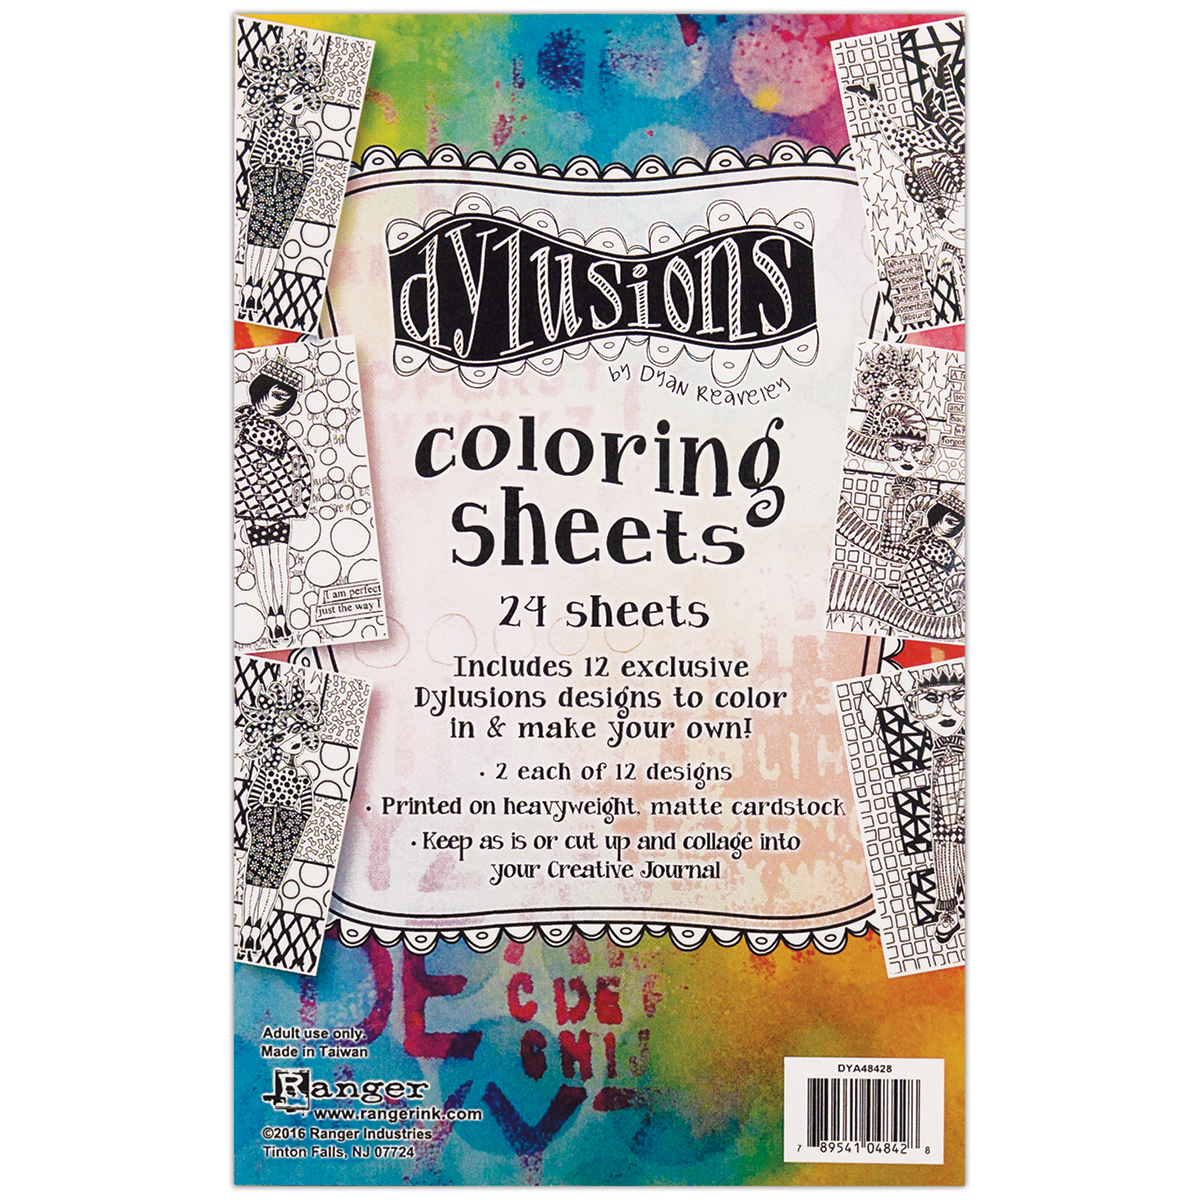 Dyan Reaveley's Dylusions Coloring Sheets 5X8-2 Each Of 12 Designs